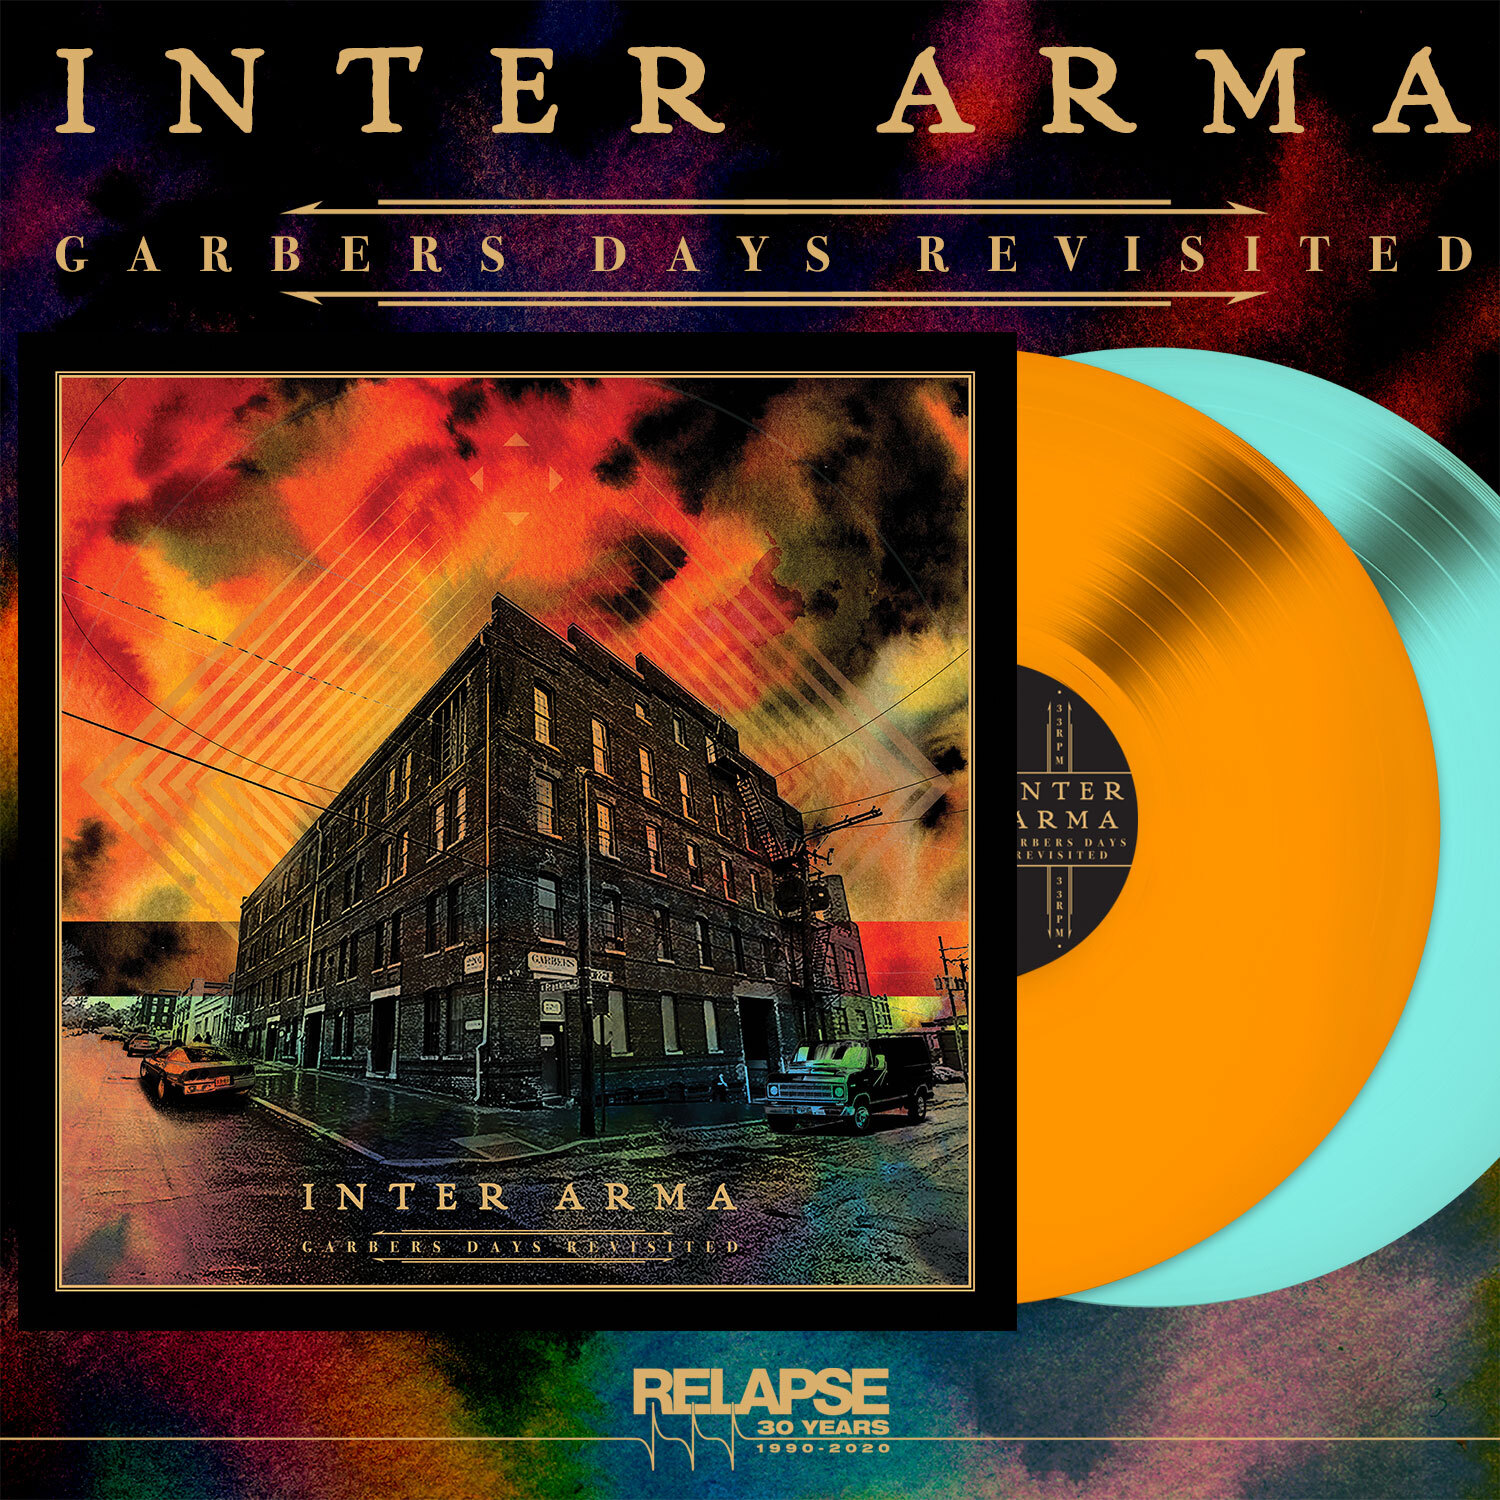 inter-arma-garbers-days-revisisted-cover-record-relapse